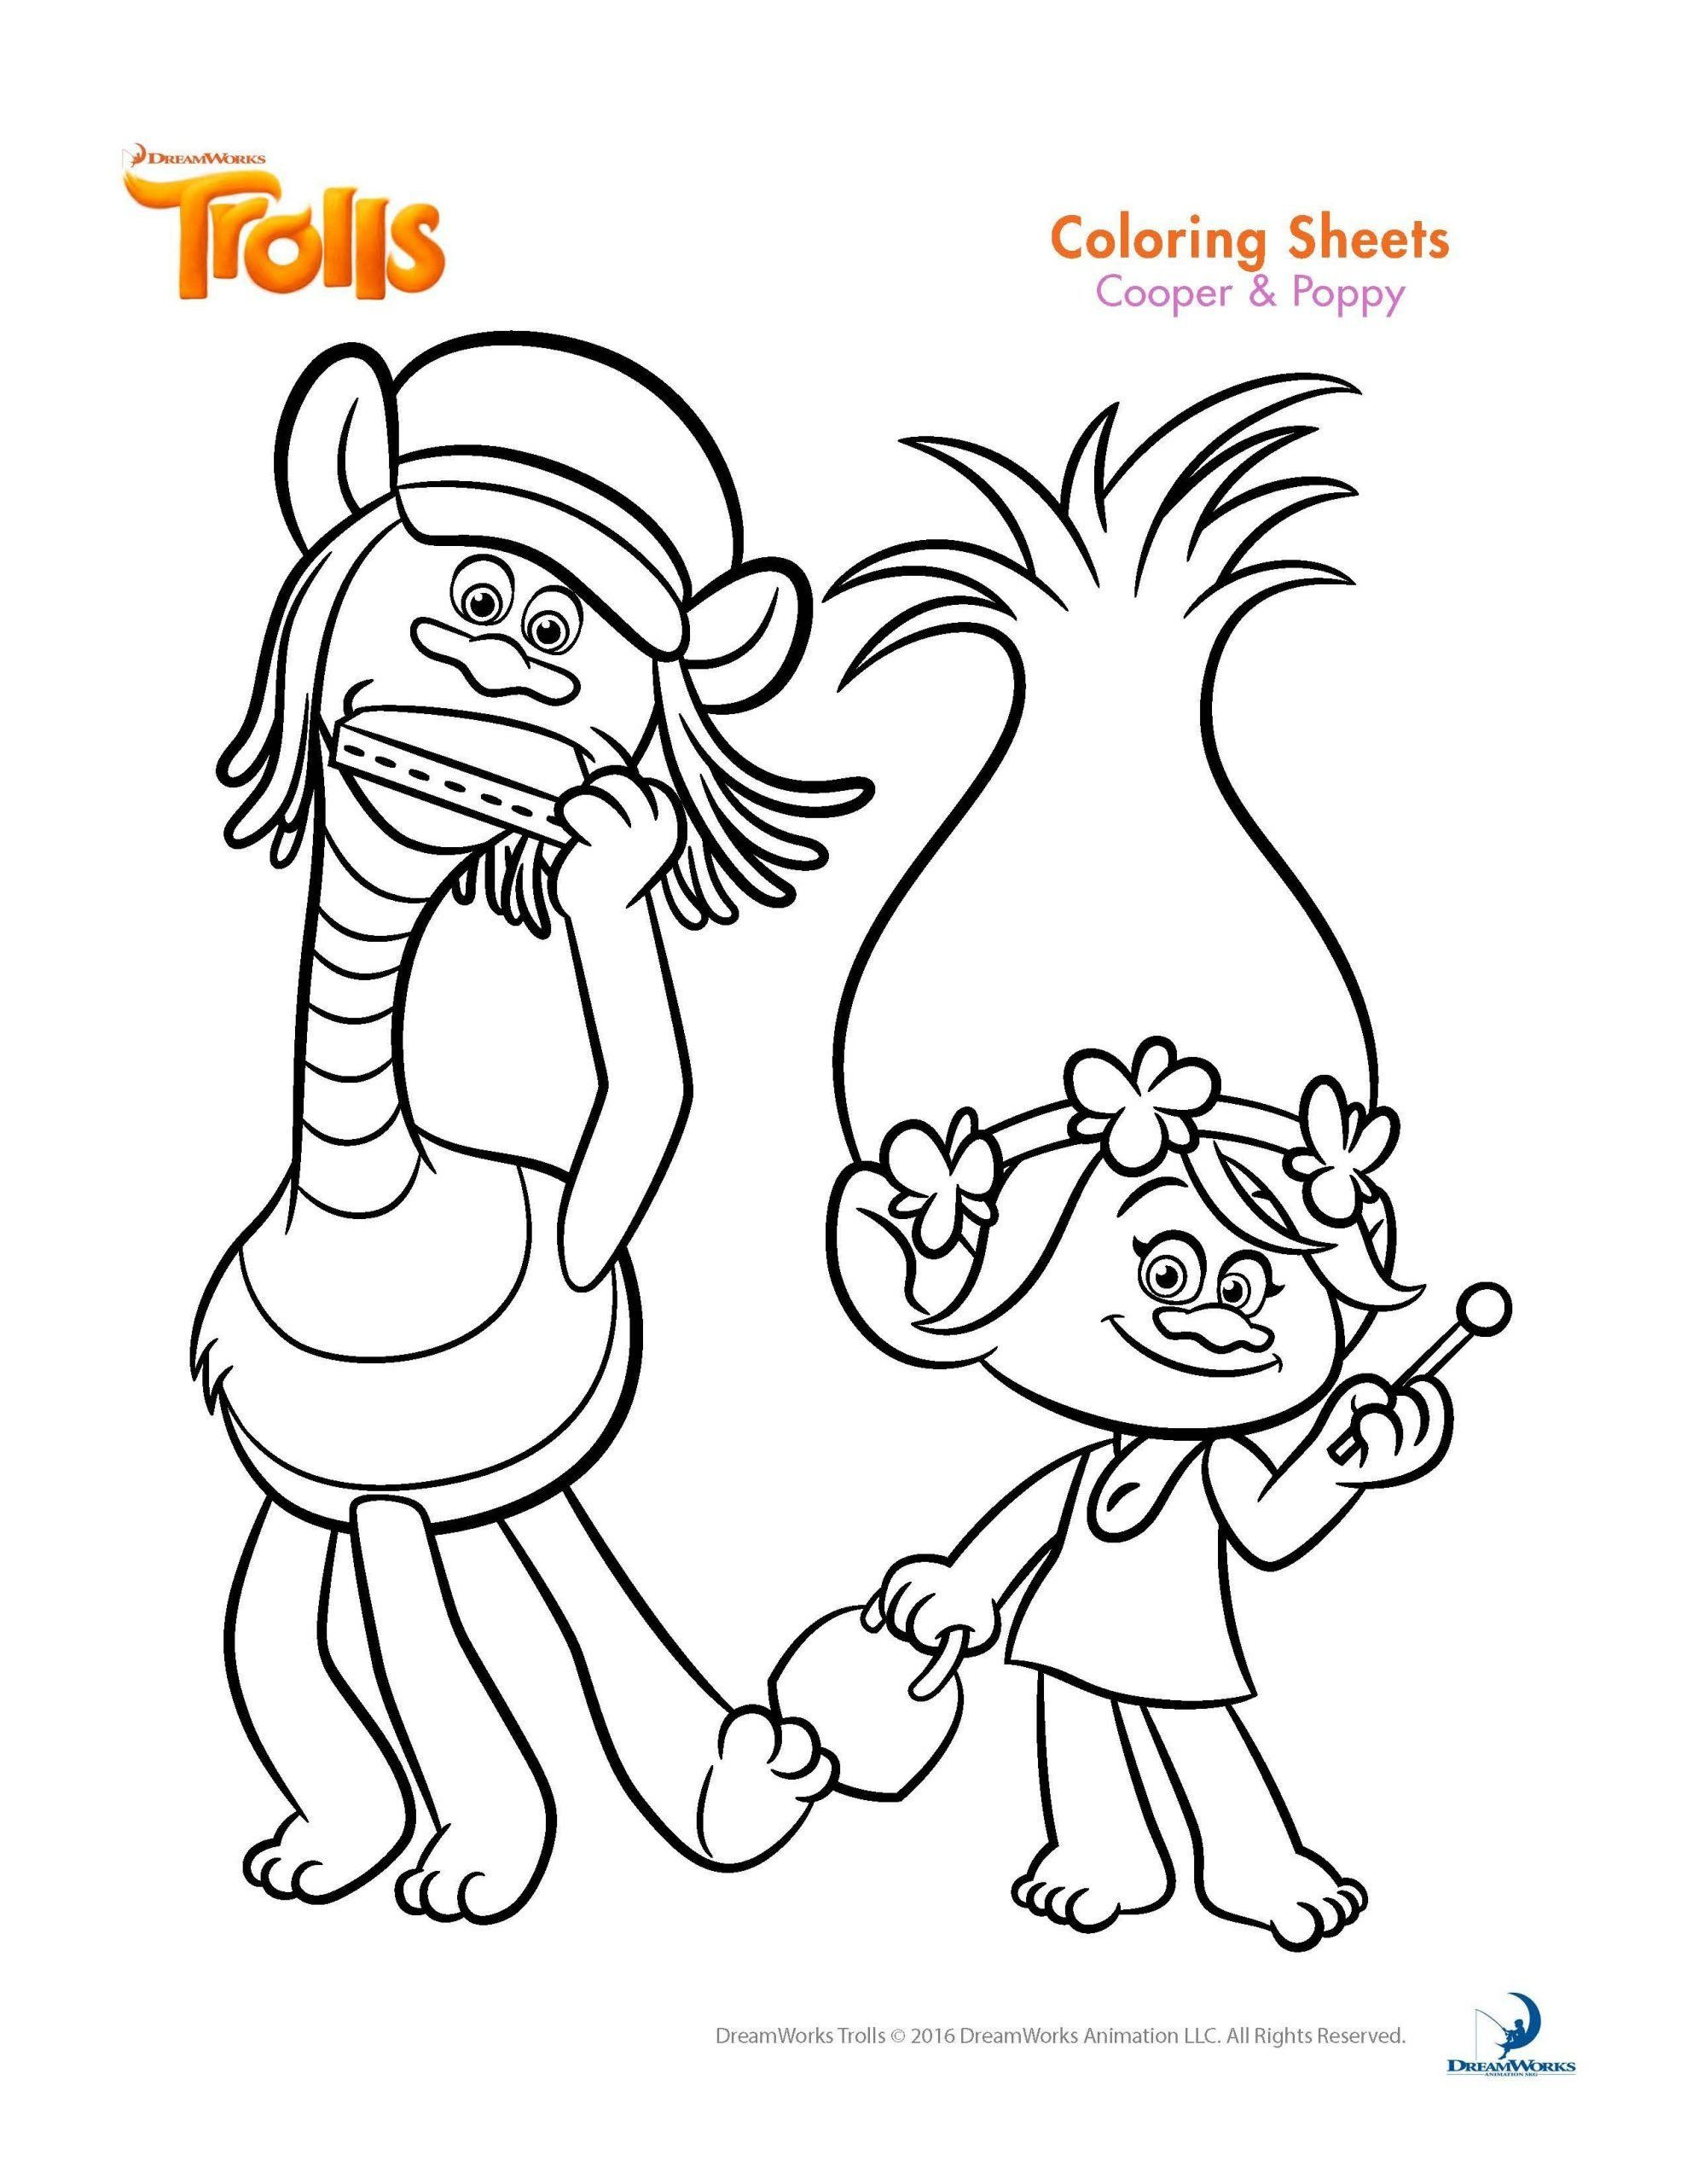 Coloring Page For Kid Trolls Trolls Coloring Pages And Printable Activity Sheets With In 2020 Poppy Coloring Page Disney Coloring Pages Cartoon Coloring Pages